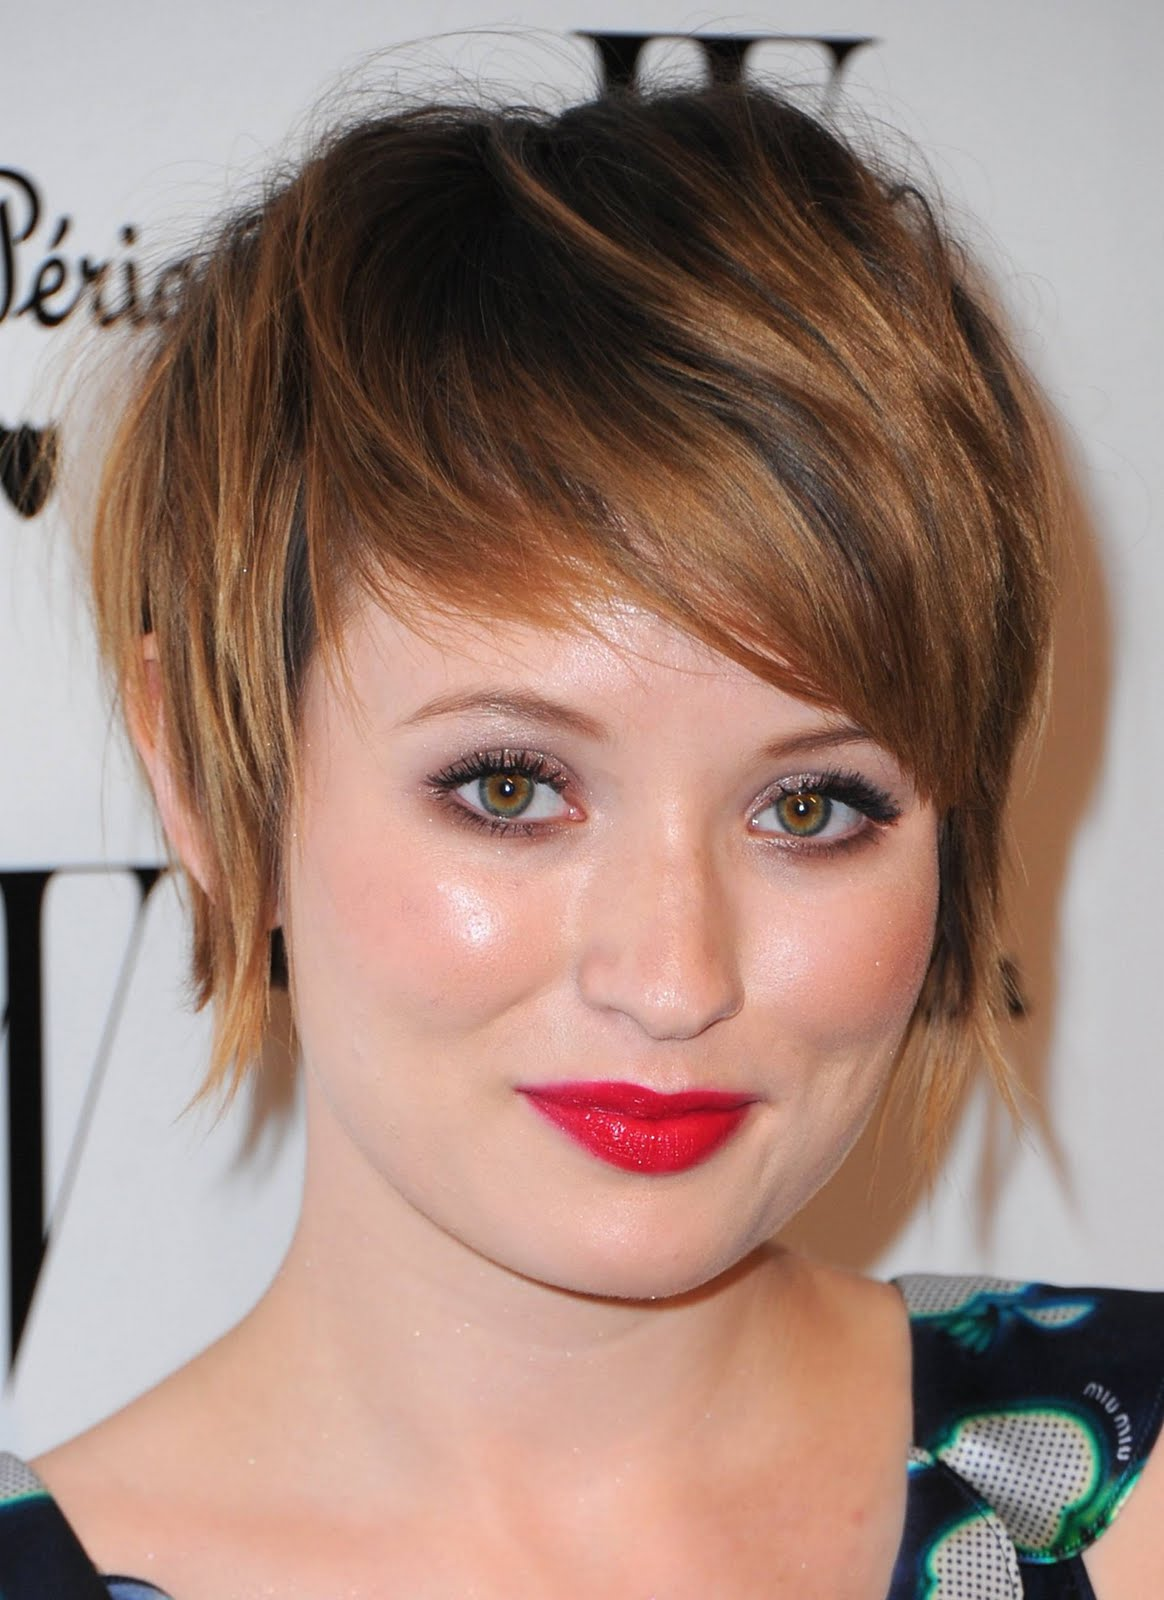 pixie cuts are tricky for round faces because they can make a face